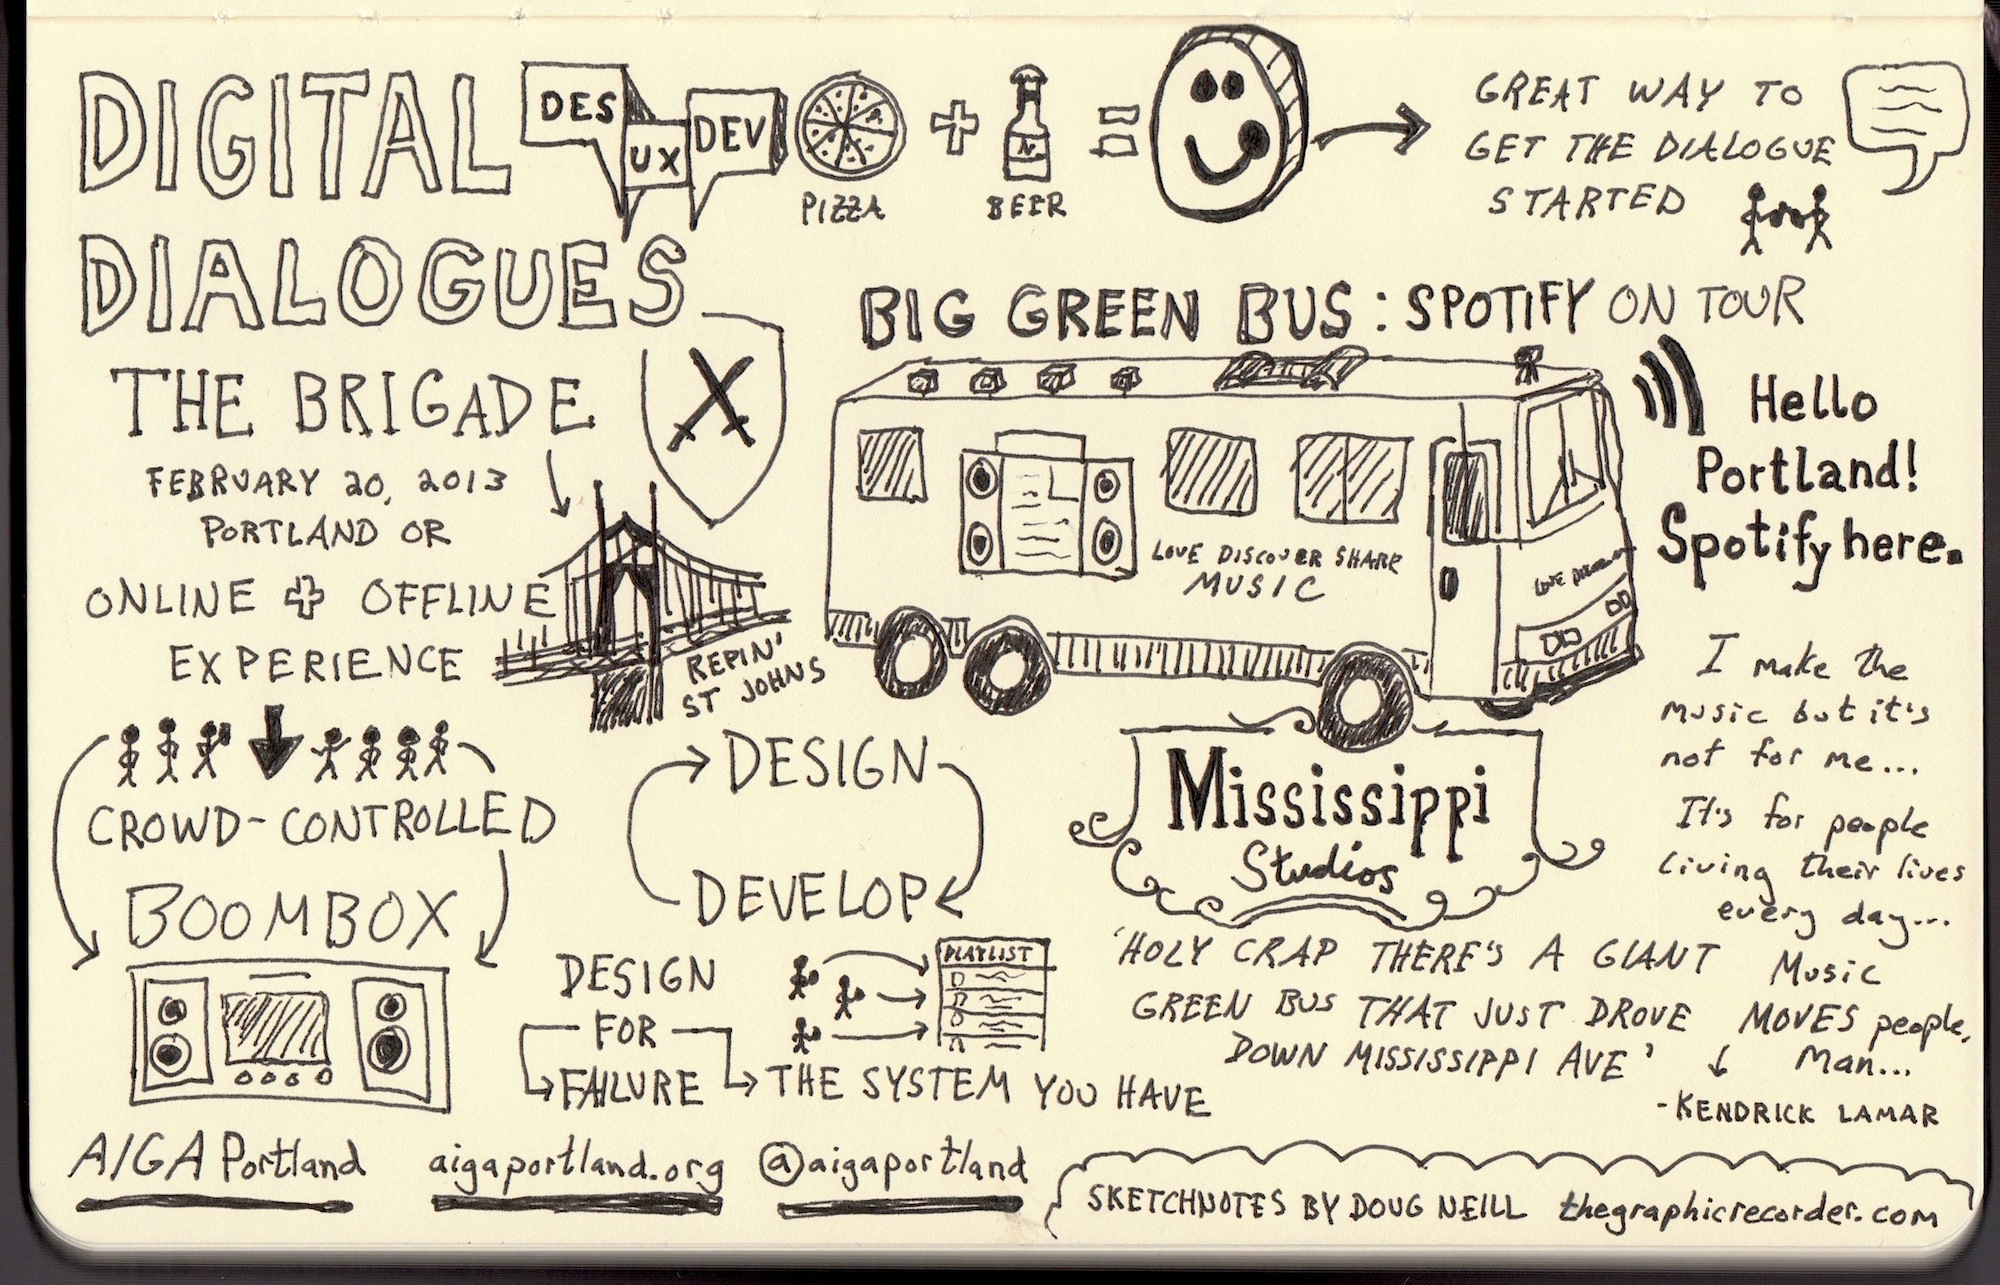 Digital Dialogues The Brigade Spotify On Tour Sketchnotes - Doug Neill, design, develop, mississippi studios, aiga portland